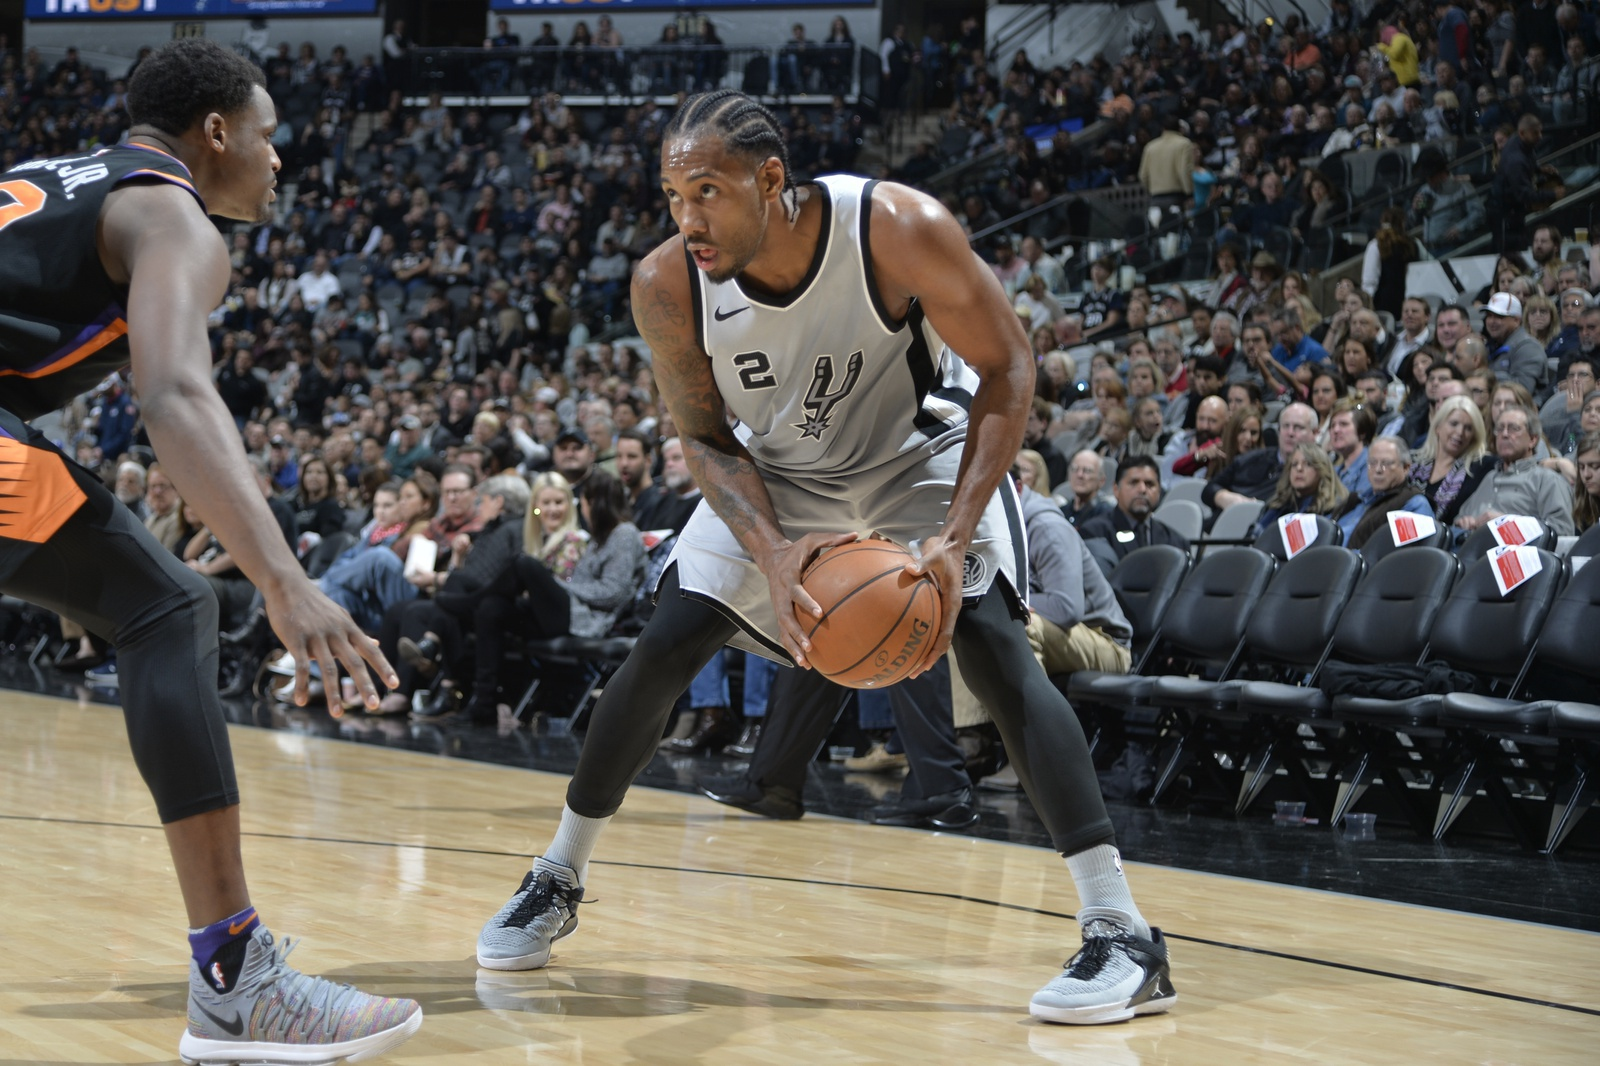 Kawhi Leonard #2 of the San Antonio Spurs handles the ball against the Denver Nuggets on January 13, 2018 at the AT&T Center in San Antonio, Texas.